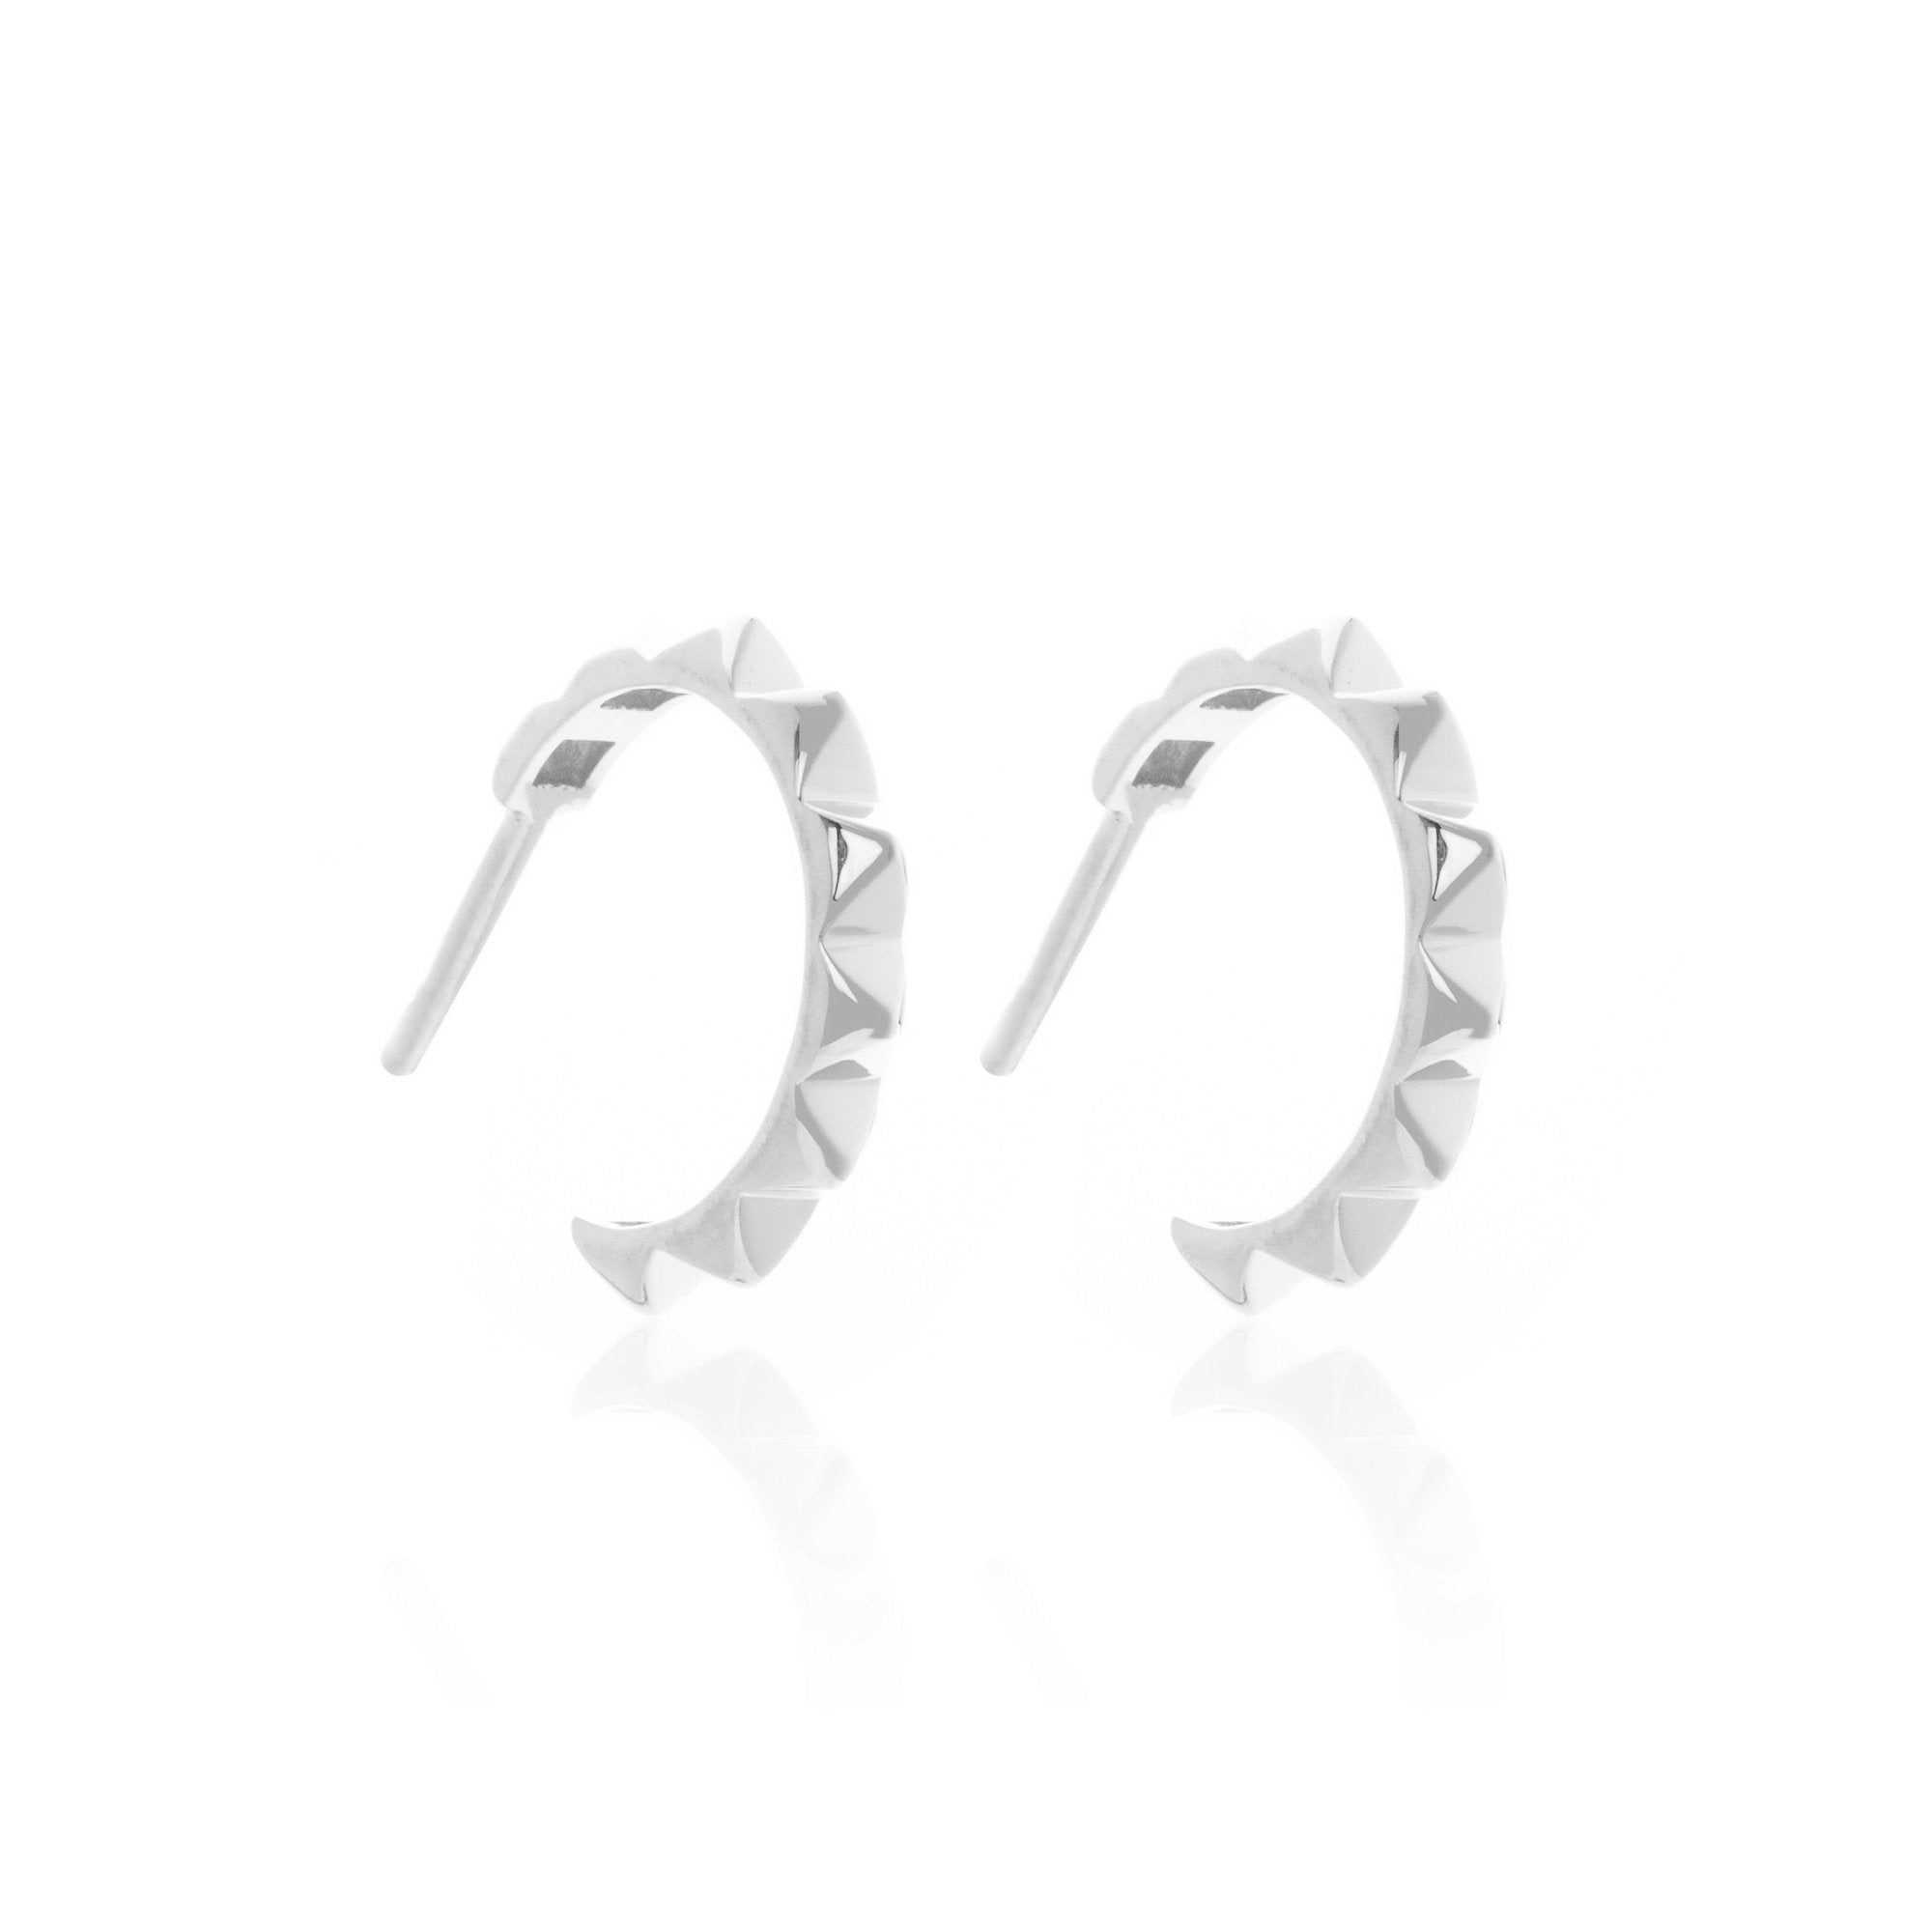 Silk & Steel Initmate Party - Silver Hoop Earrings